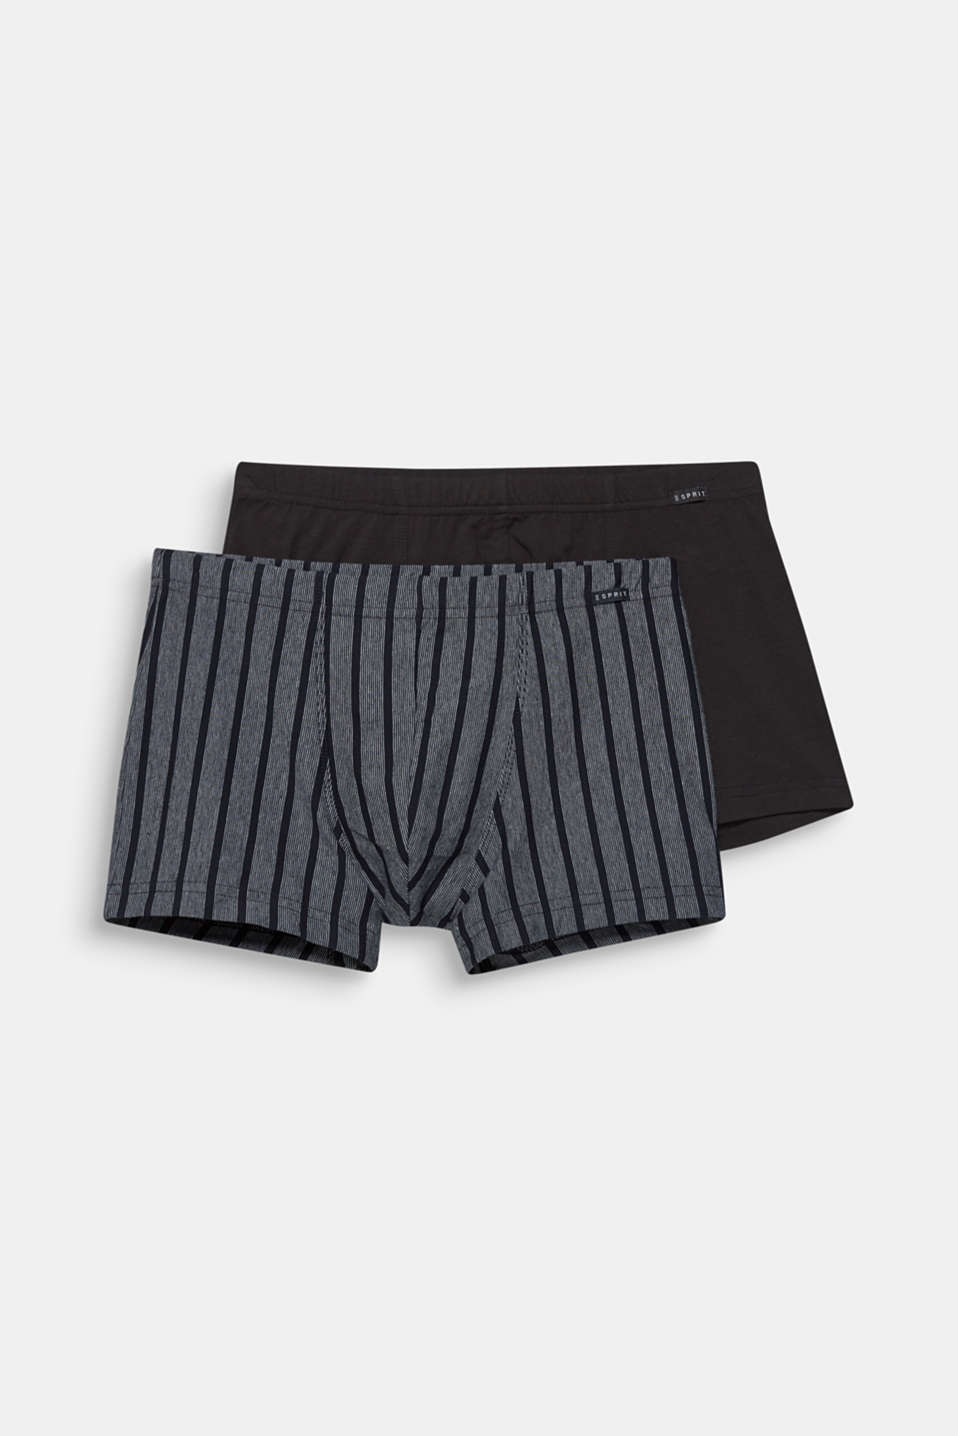 Your underwear basic: hipster cotton shorts with added stretch for comfort